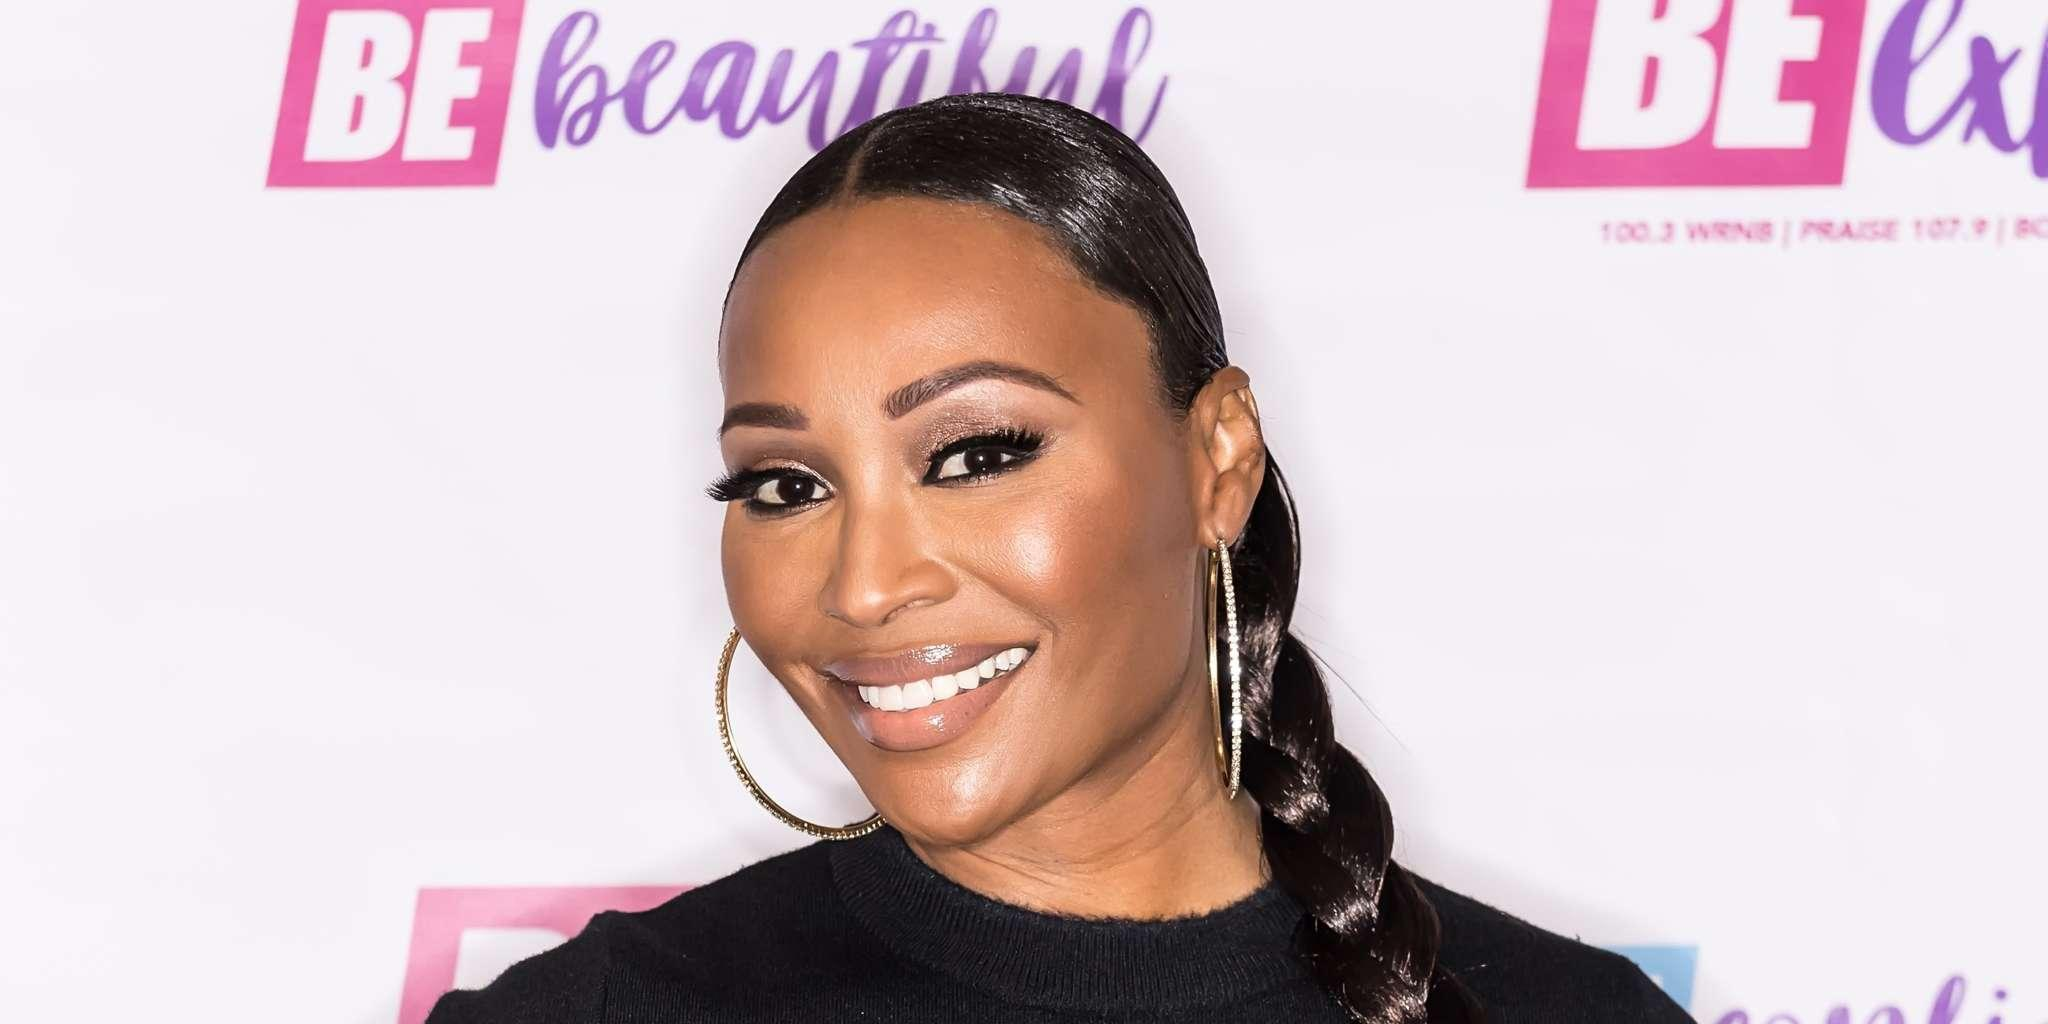 Cynthia Bailey Surprises Her Fans With A Closet Reveal - Check Out Her Video